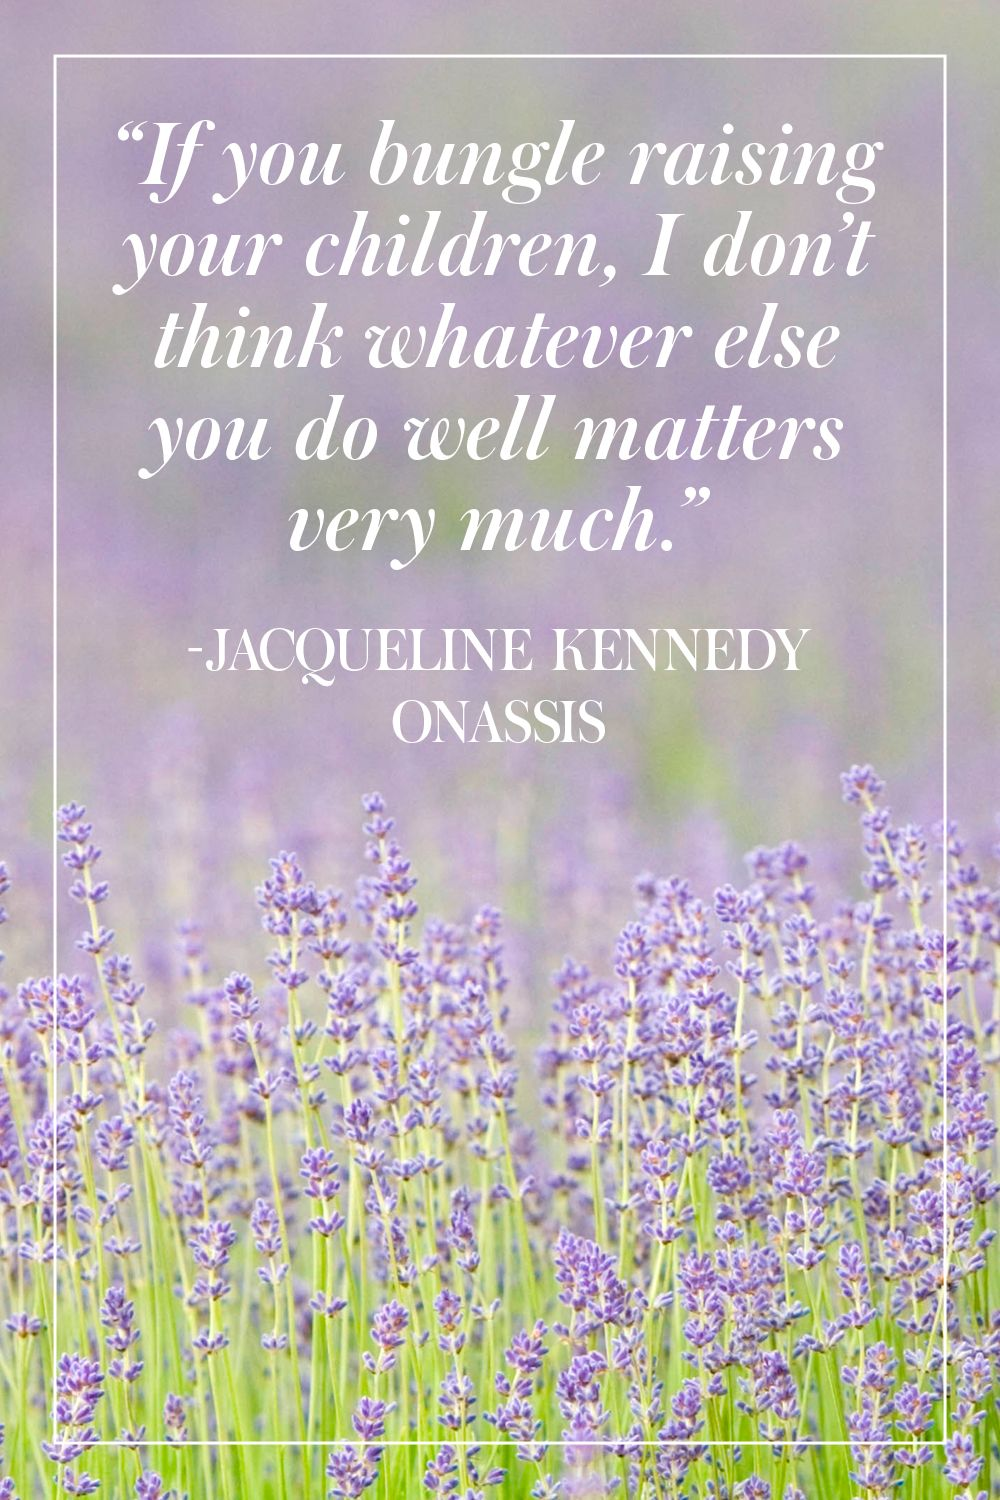 """""""If you bungle raising your children, I don't think whatever else you do well matters very much."""" - Jacqueline Kennedy Onassis"""